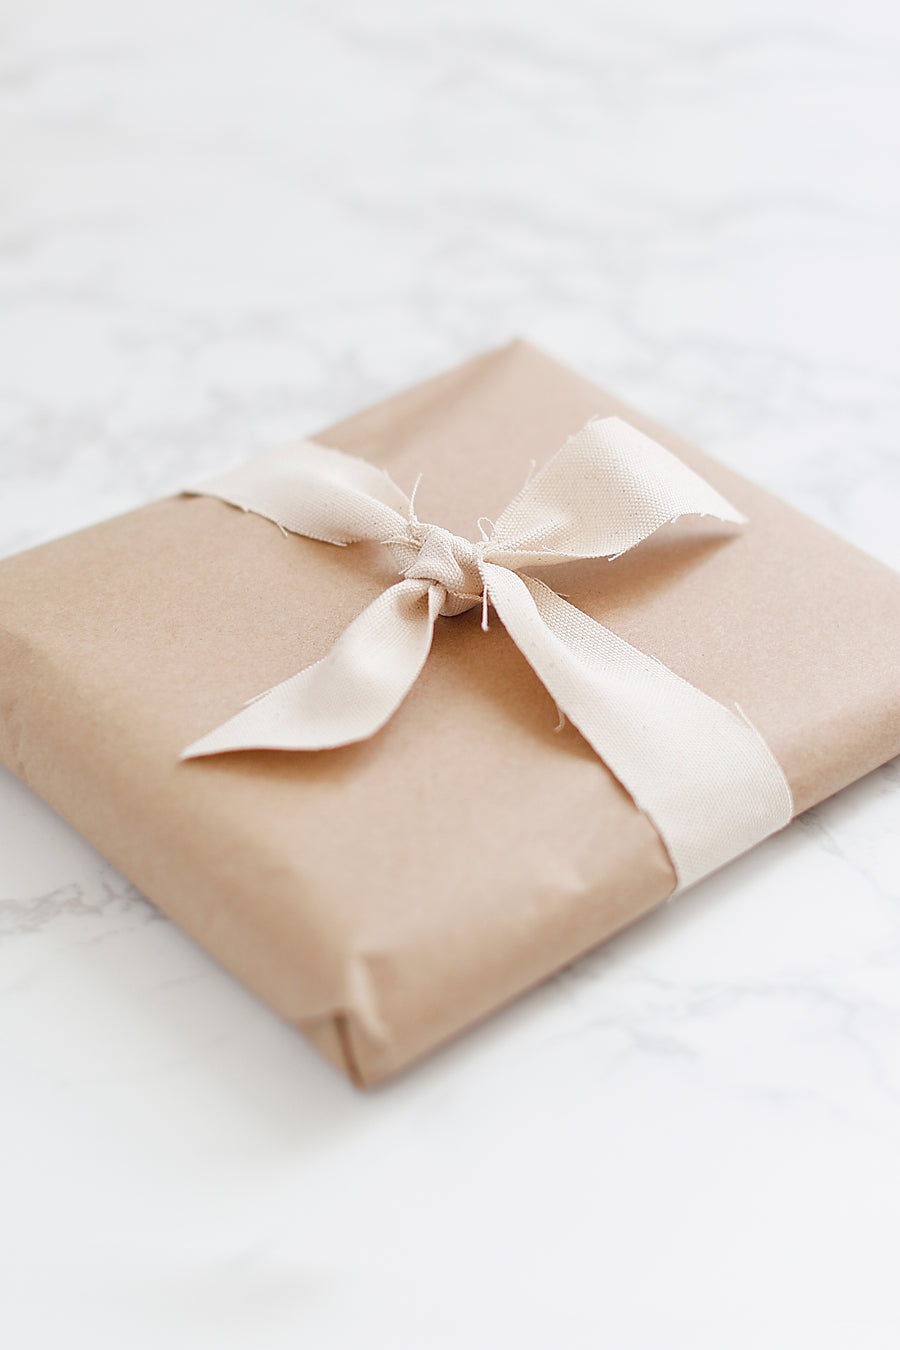 Eco Gift Wrapping - Aplat